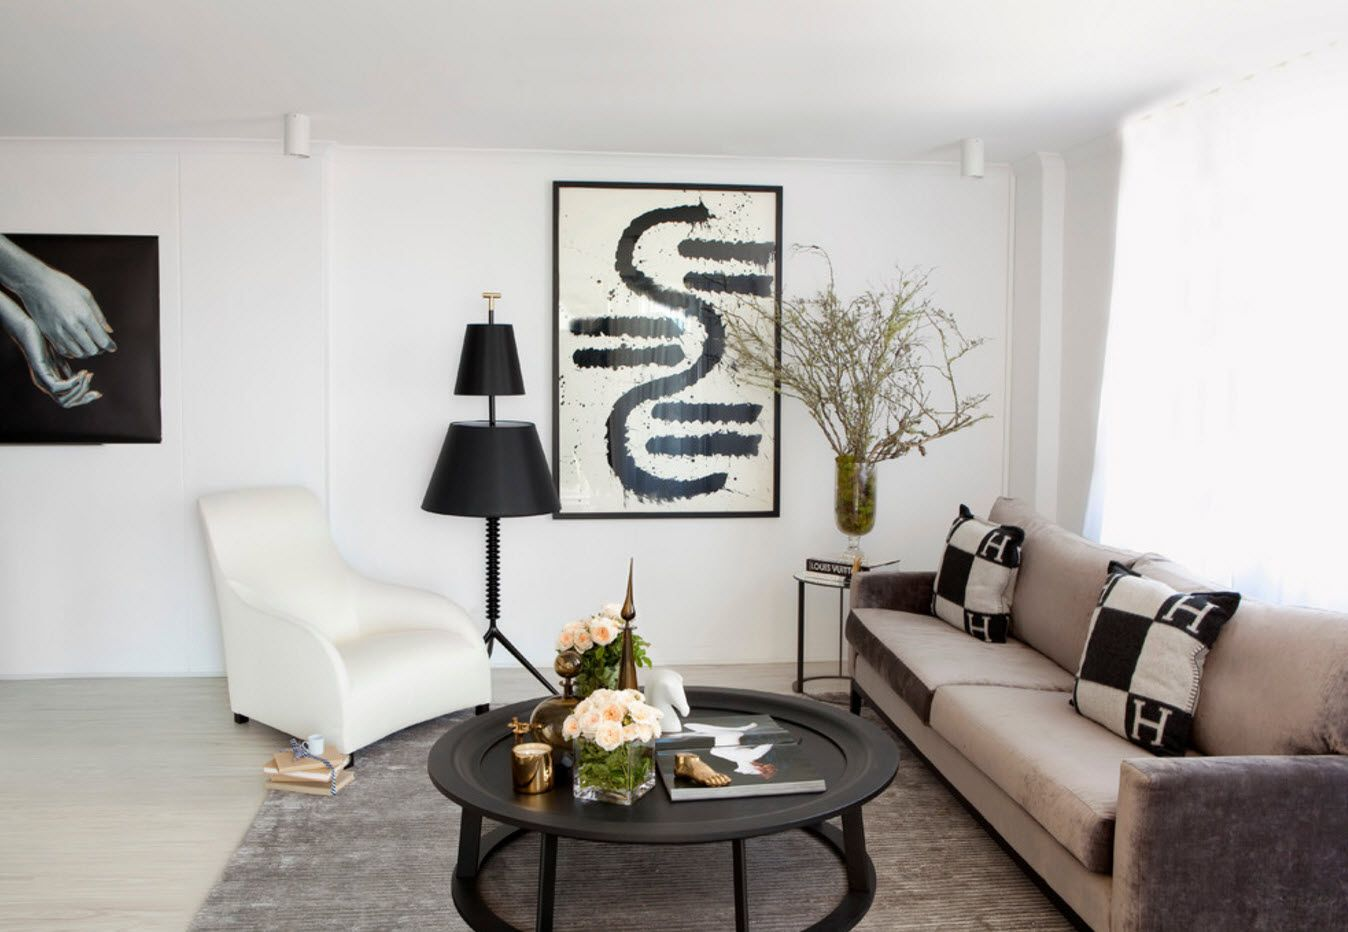 Apartment Interior Design Inspiration Ideas & Trends 2017. Abstract picture